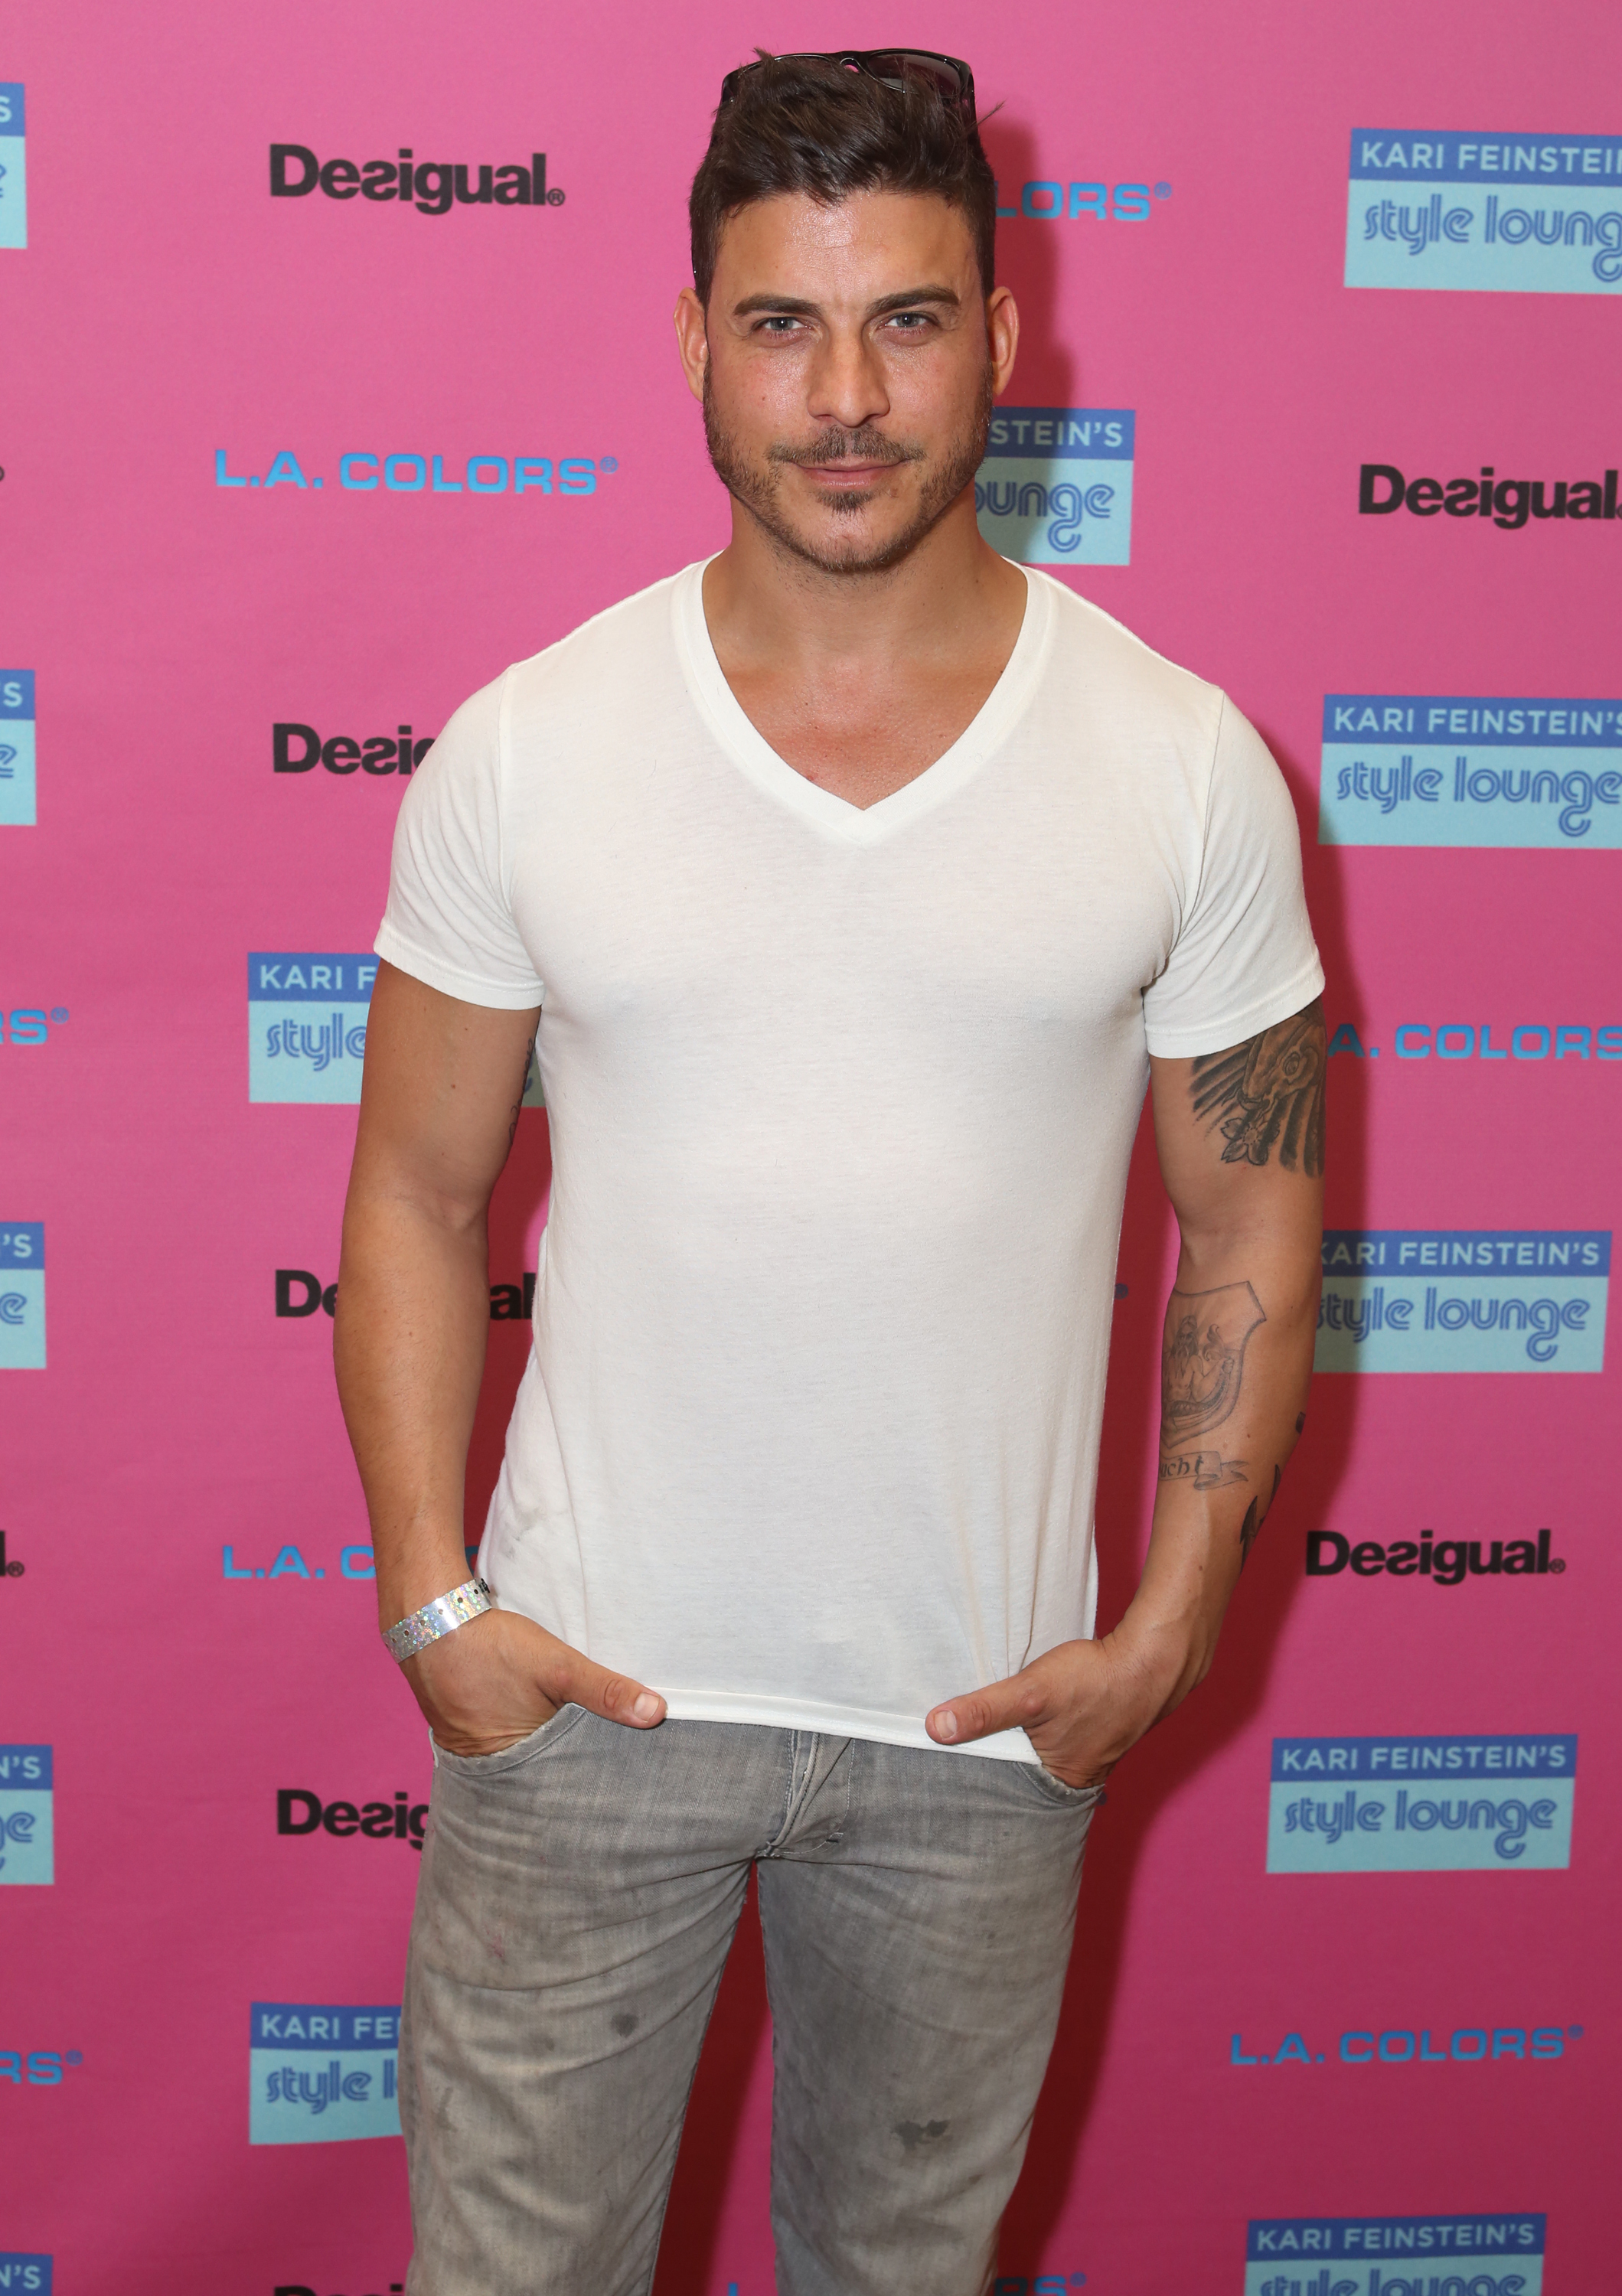 jax taylorjax taylor app, jax taylor stassi schroeder, jax teller sons of anarchy, jax taylor, jax taylor instagram, jax taylor wiki, jax taylor arrested, jax taylor imdb, jax taylor sons of anarchy, jax taylor wikipedia, jax taylor net worth, jax taylor twitter, jax taylor gay, jax taylor age, jax taylor girlfriend, jax taylor nose job, jax taylor herpes, jax taylor and brittany cartwright, jax taylor arrest, jax taylor sunglasses